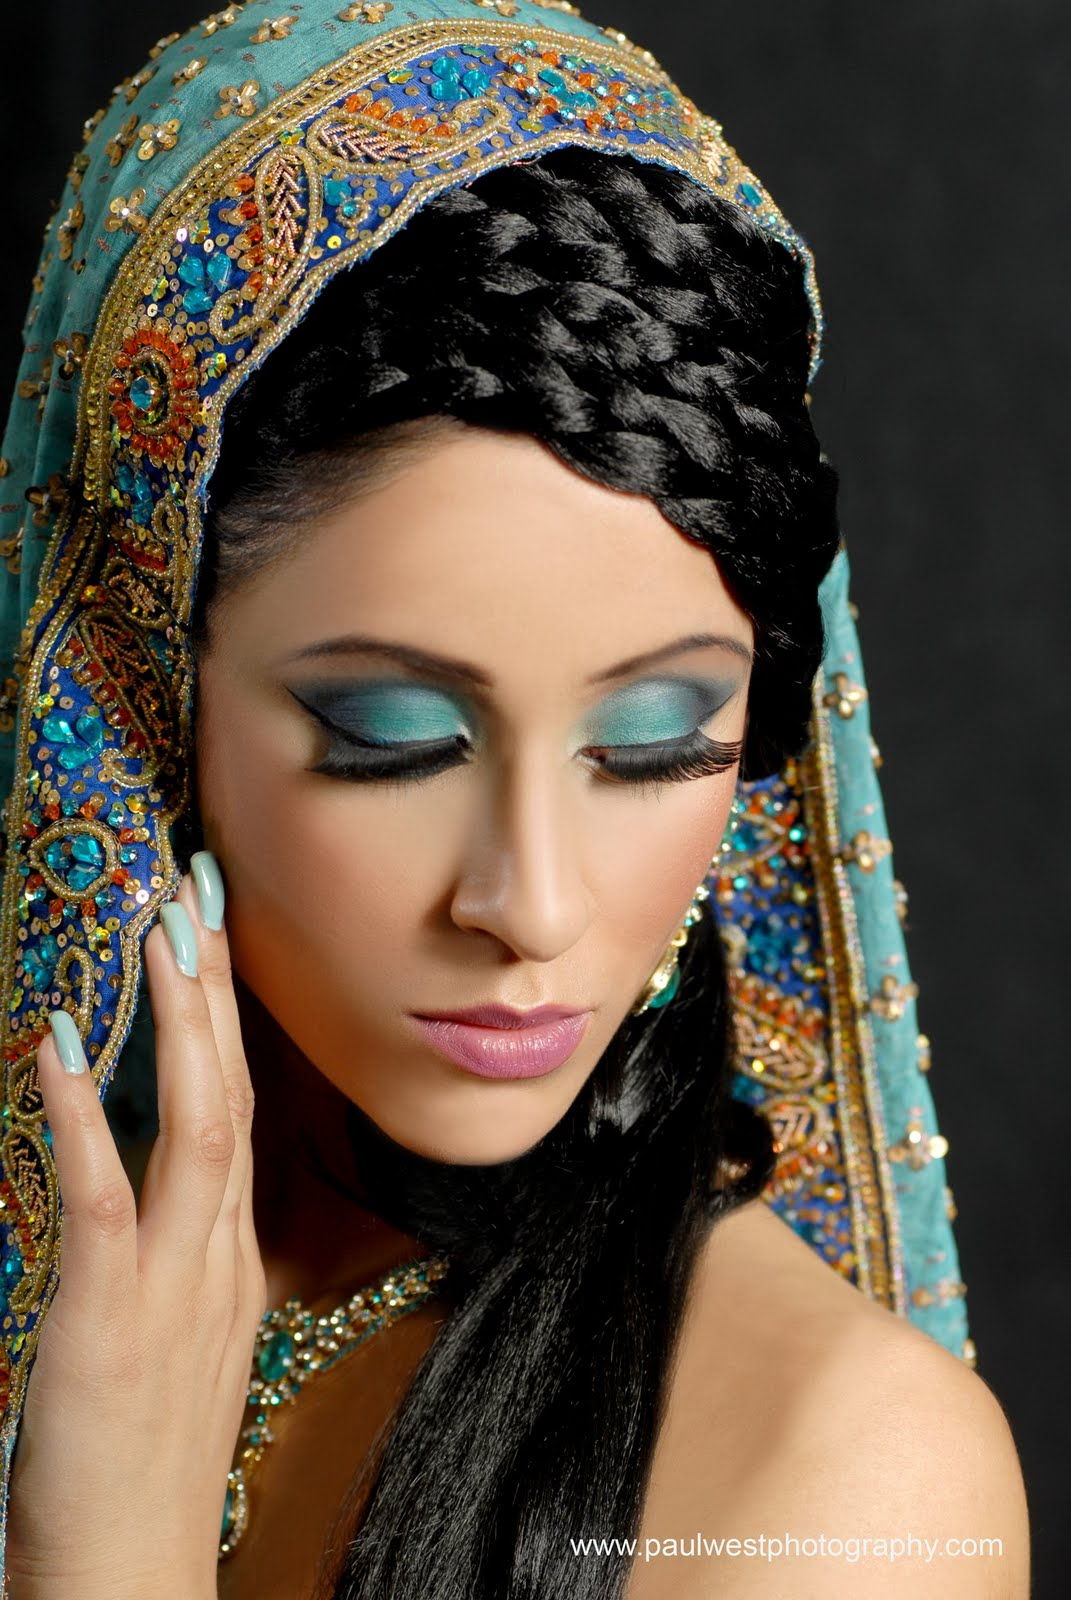 Indian Proposal Wedding Planning Tips And Ideas Indian Wedding Makeup Tips